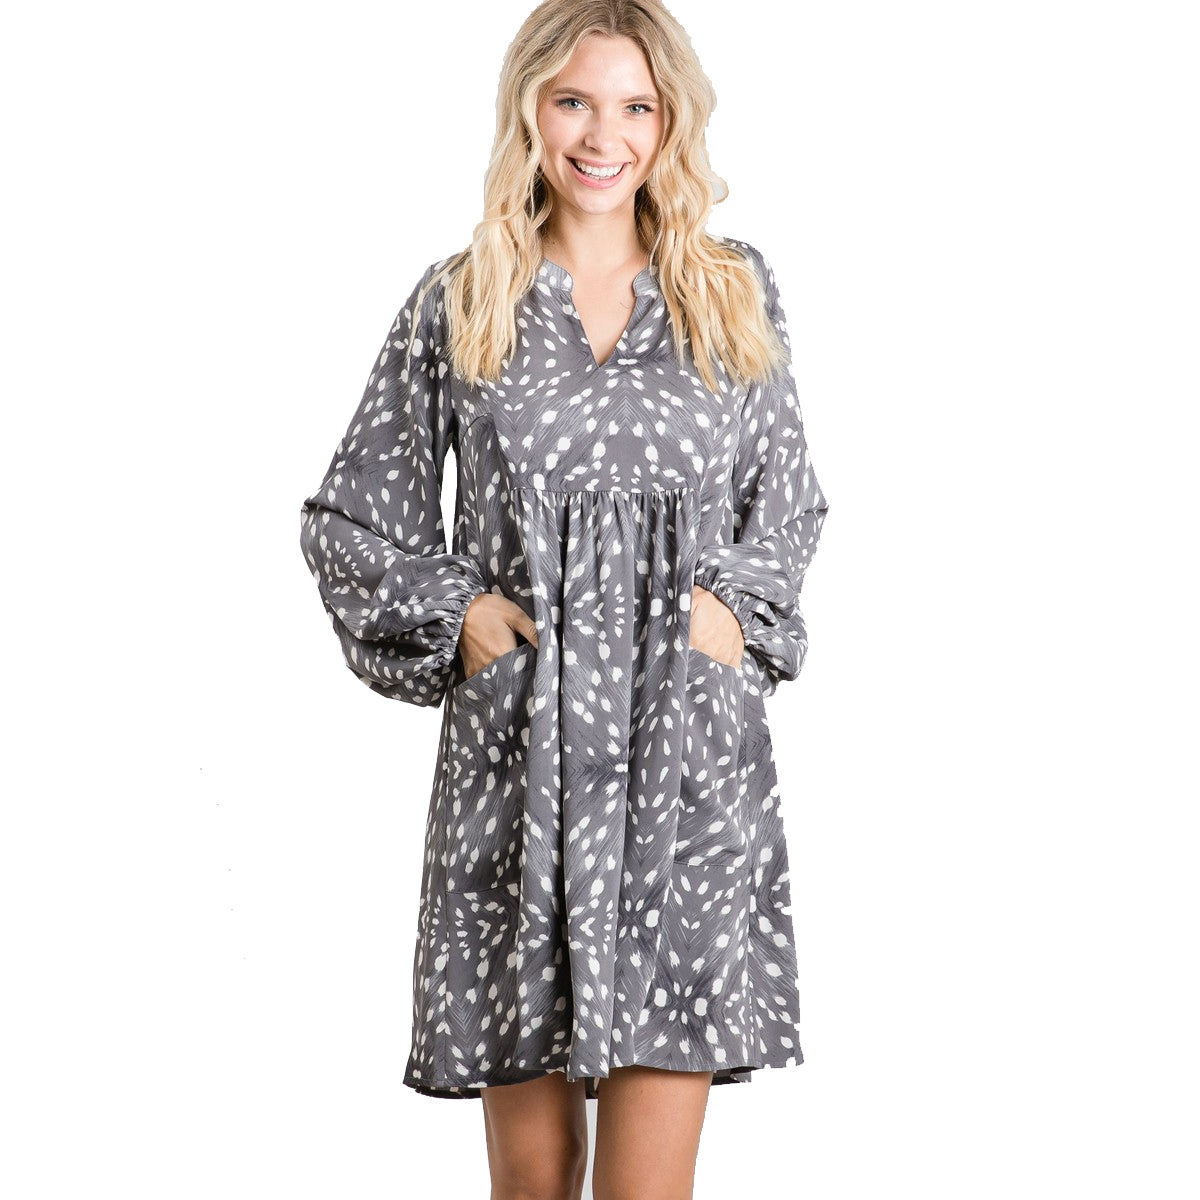 Jodifl Women's Print Baby Doll Bubble Sleeve Dress - Charcoal